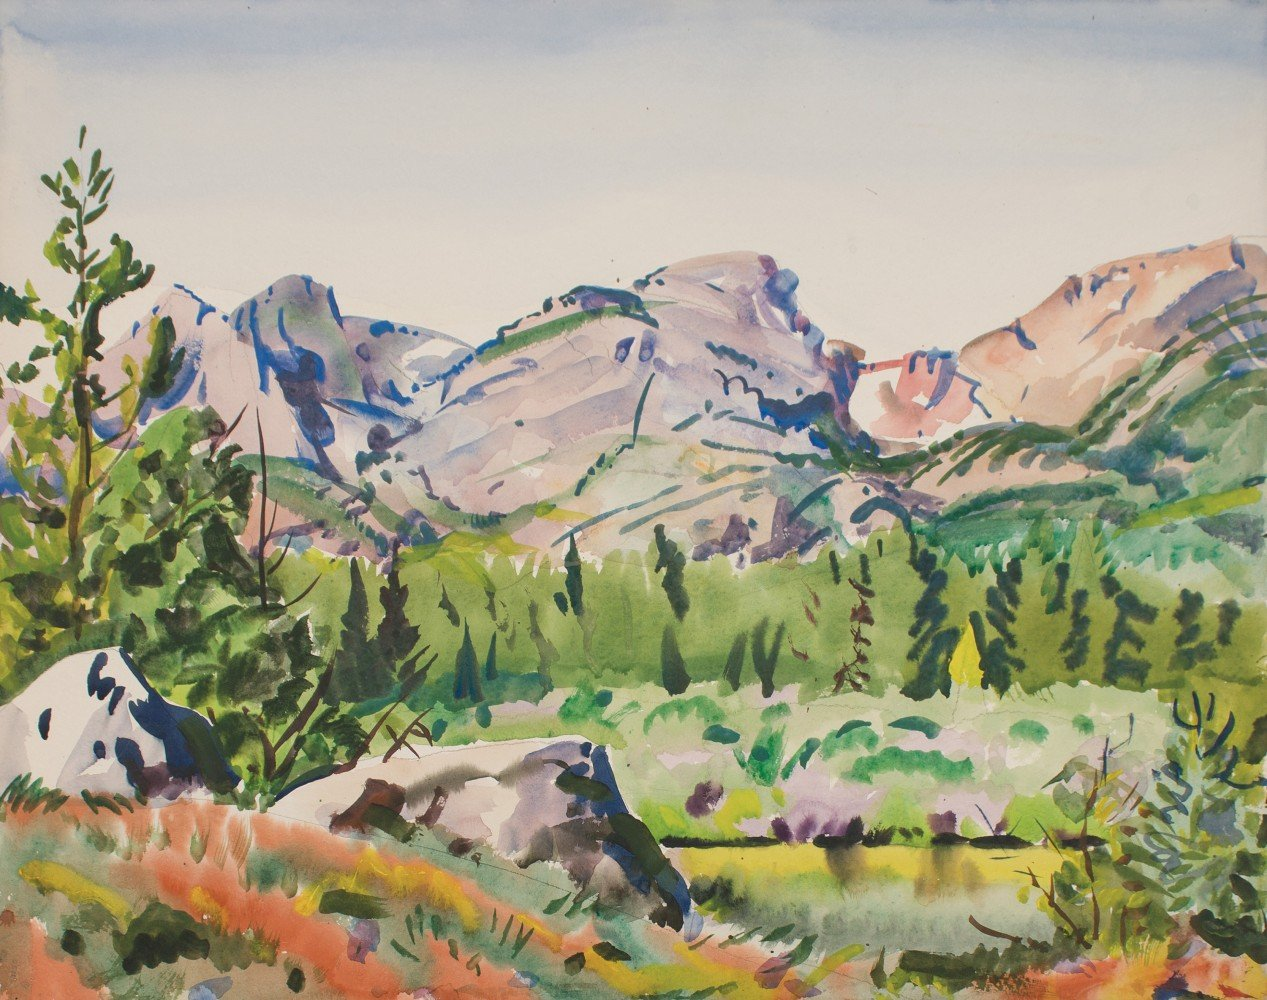 Landscape Watercolor on Paper Painting: